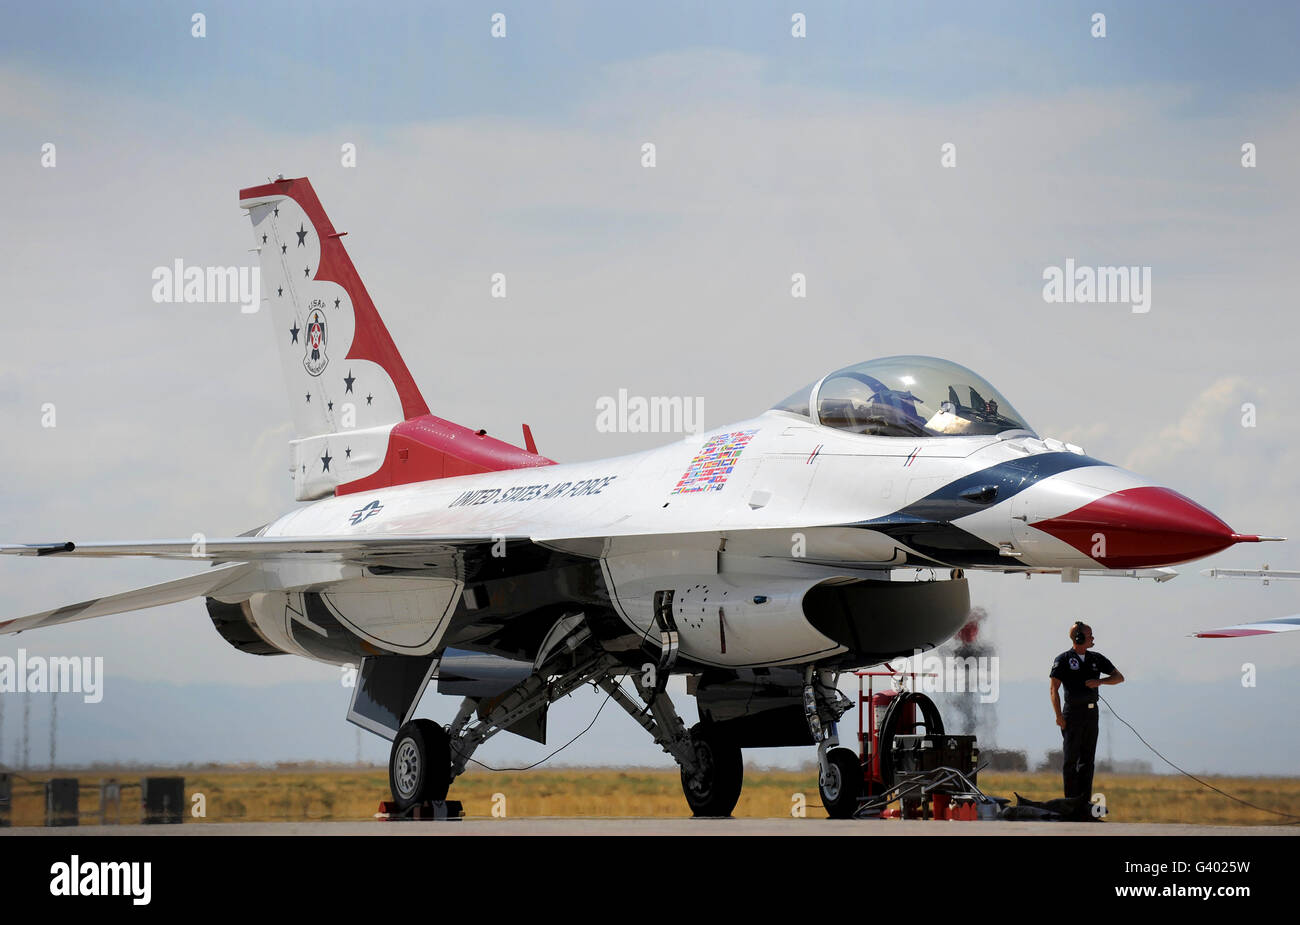 Preflight checks are performed on a U.S. Air Force Thunderbirds aircraft. - Stock Image